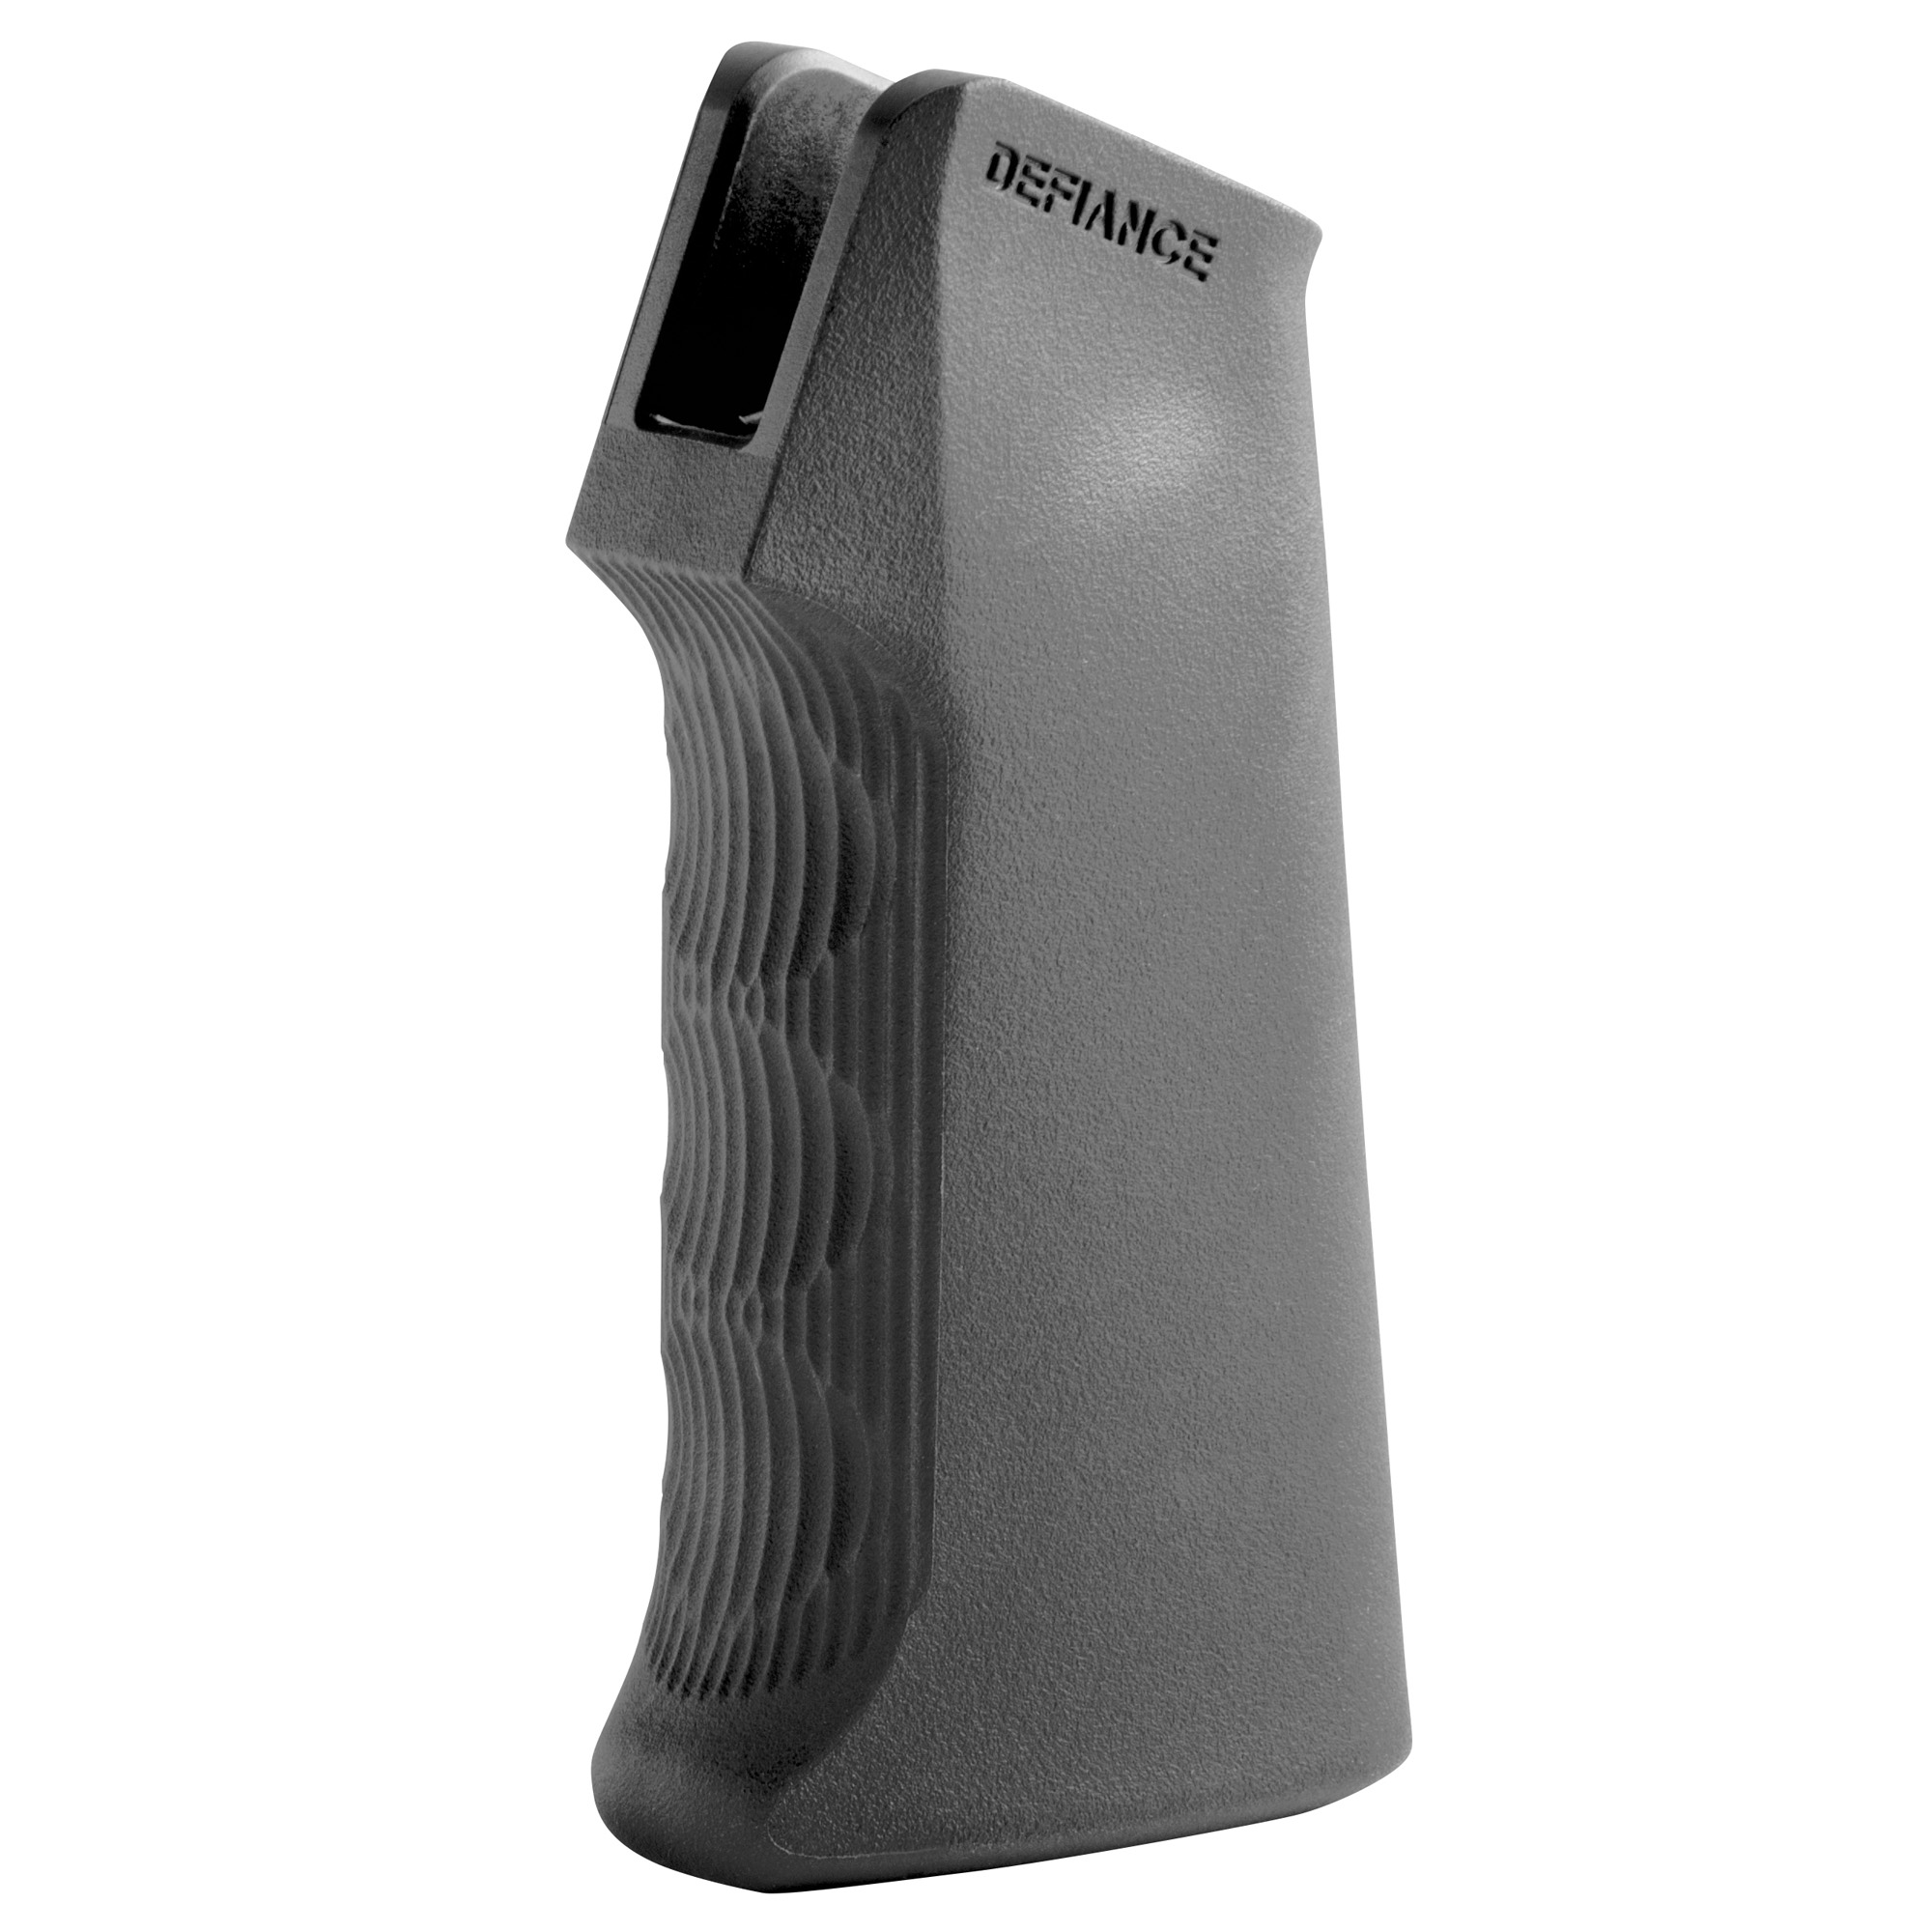 """KRISS USA's AR-15 Pistol Grip is exactly what you need to get more out of your rifle. It features rock solid polymer construction and a comfortable ergonomic shape to maintain a positive grip even with gloved hands. The lines are sleek and smooth for a soft comfortable feel. Like everything with the KRISS name on it"""" this grip is built to last. When you're ready to get serious about your equipment"""" make sure the KRISS Pistol Grip is on your rifle!"""